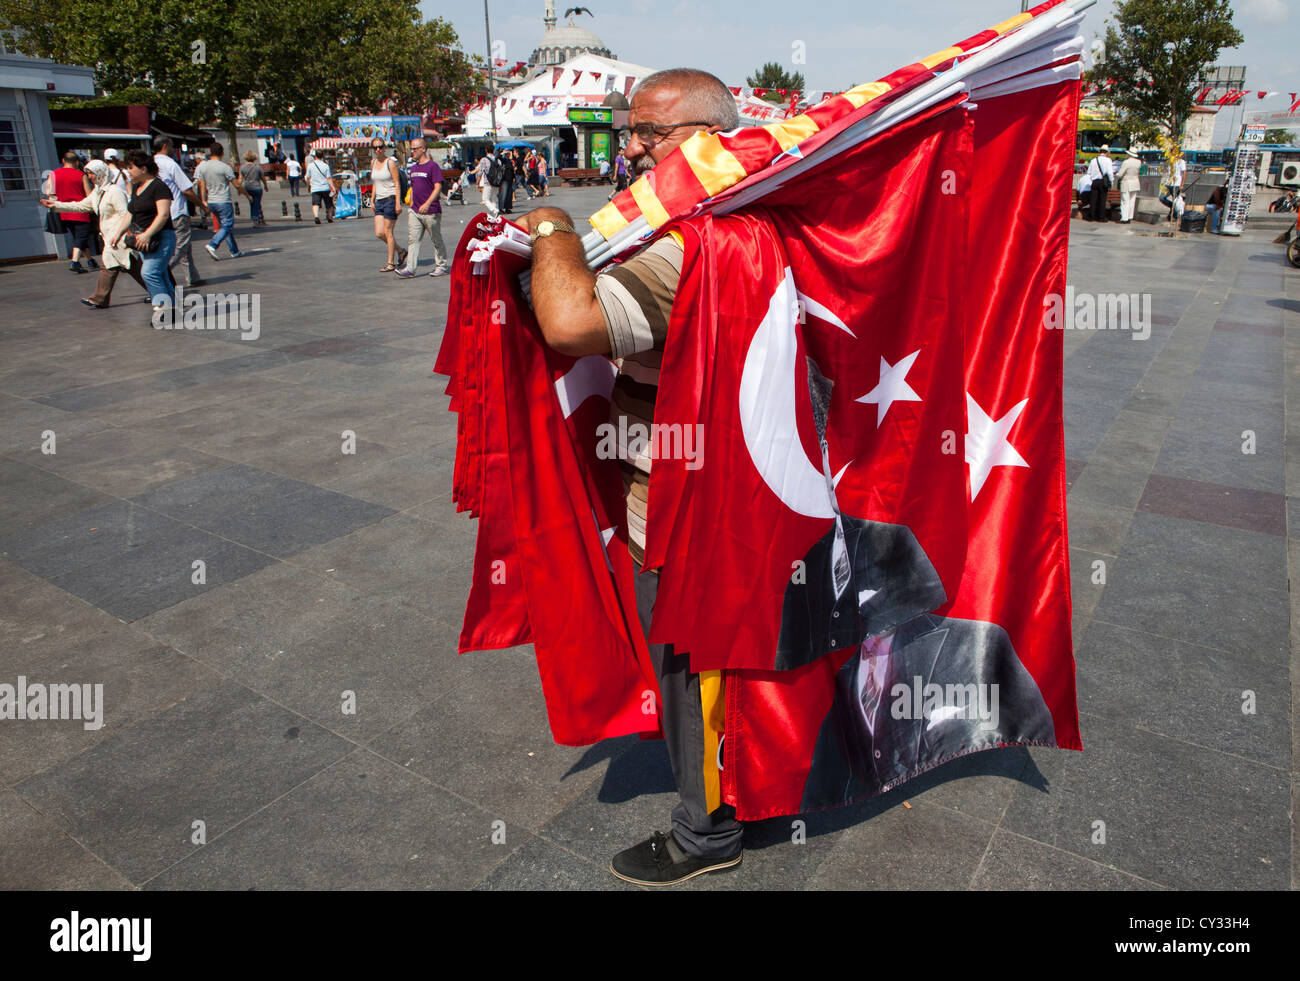 Turk selling flags of Ataturk, istanbul - Stock Image